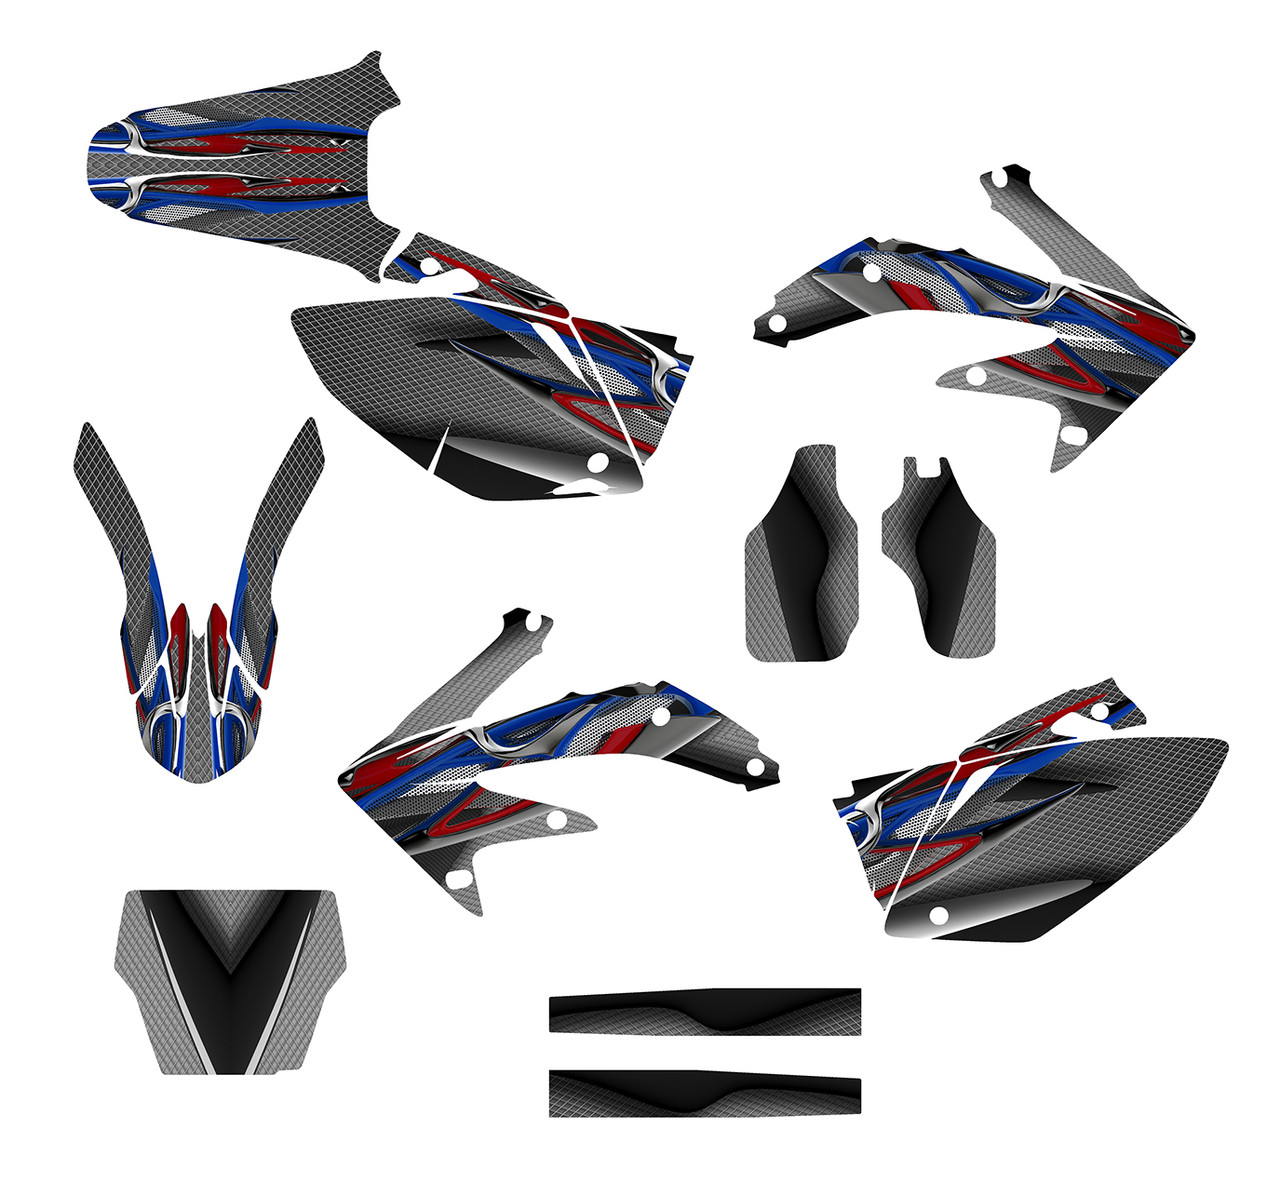 Custom graphics sticker kit for 2008 CRF450R dirt bikes